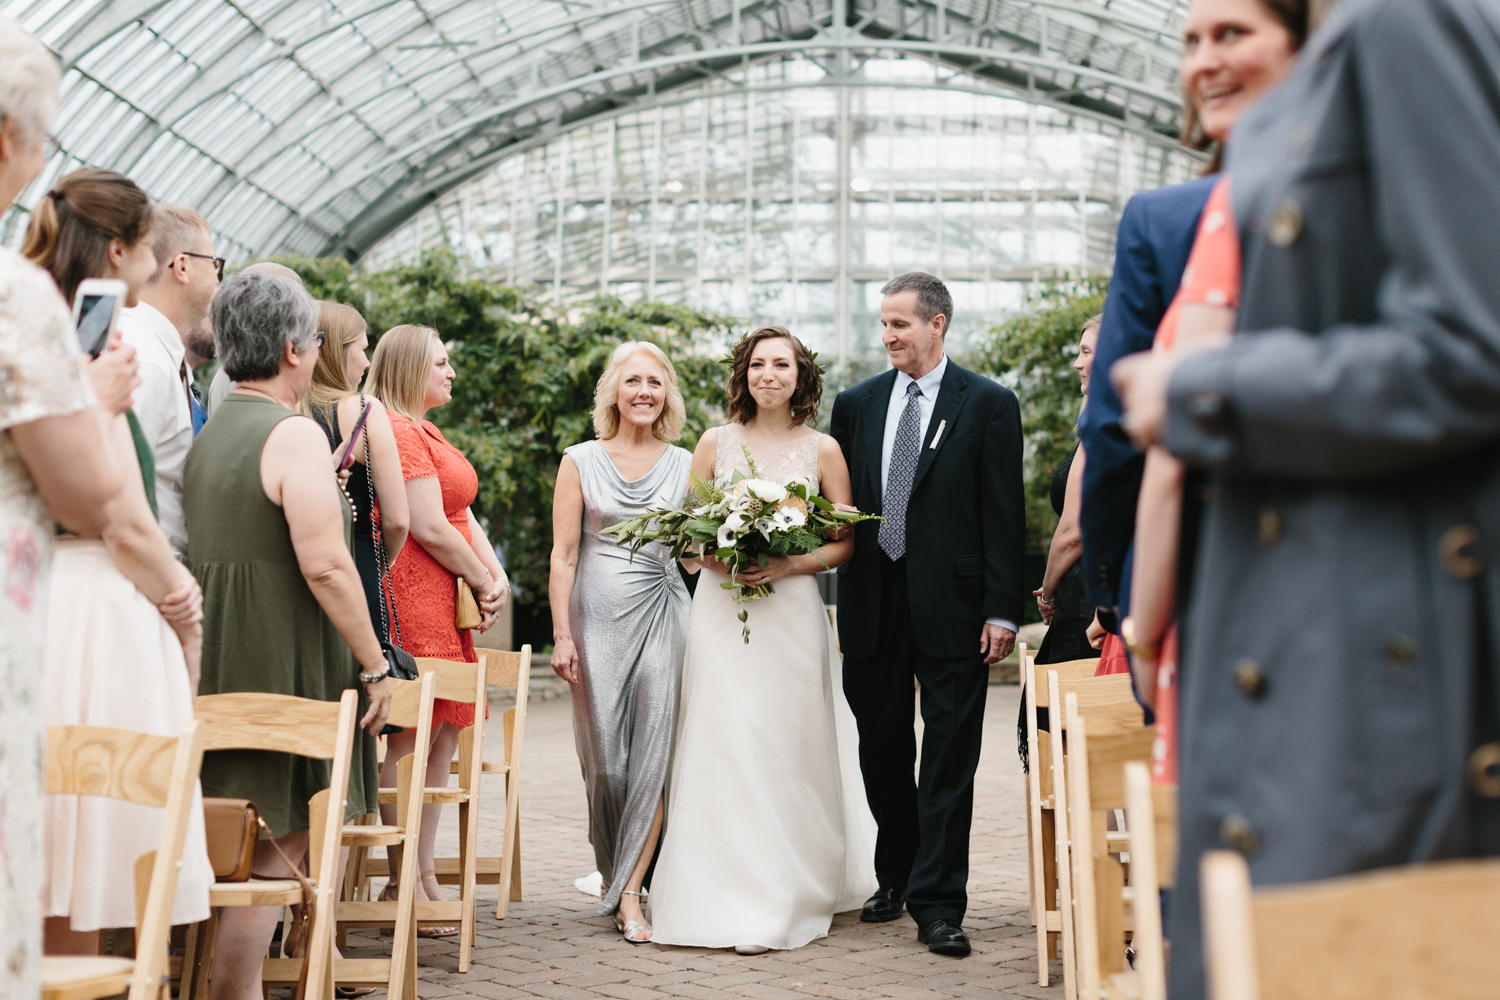 Chicago Garfield Park Conservatory Wedding by Northern Michigan Photographer Mae Stier-058.jpg